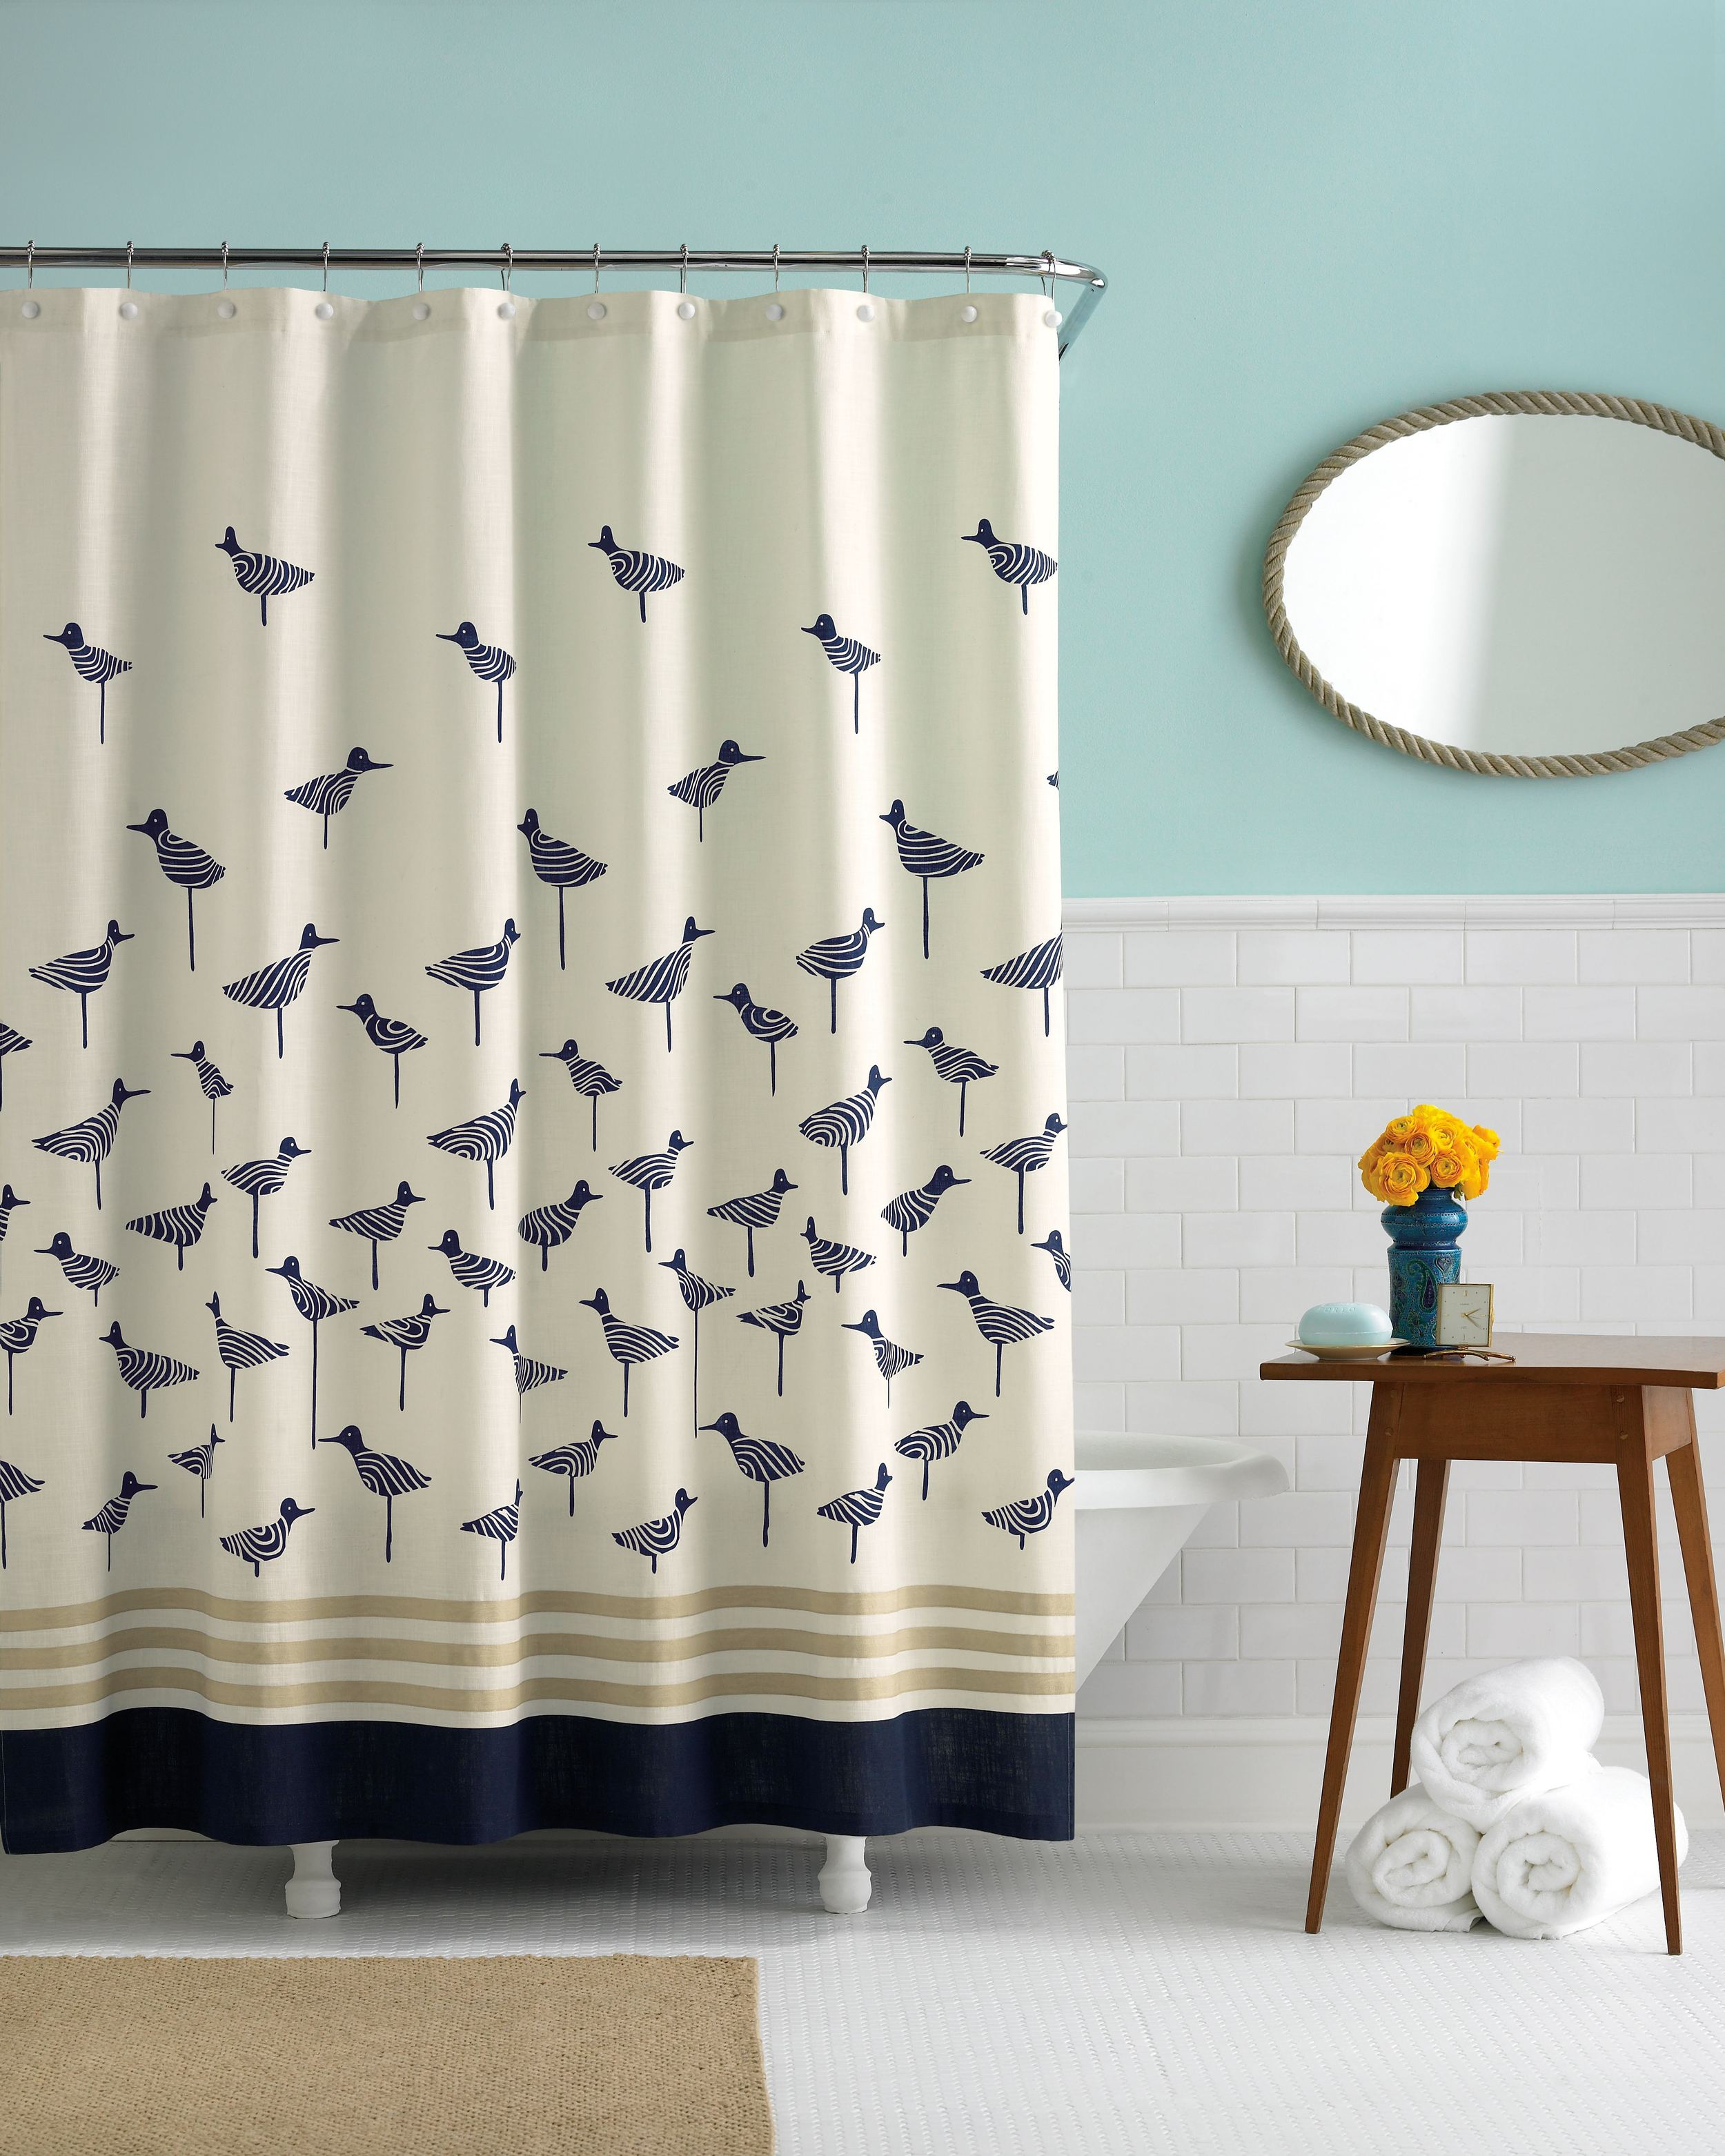 sandpiper-shower-curtain-unique-bathrooms-by-artceram.jpg